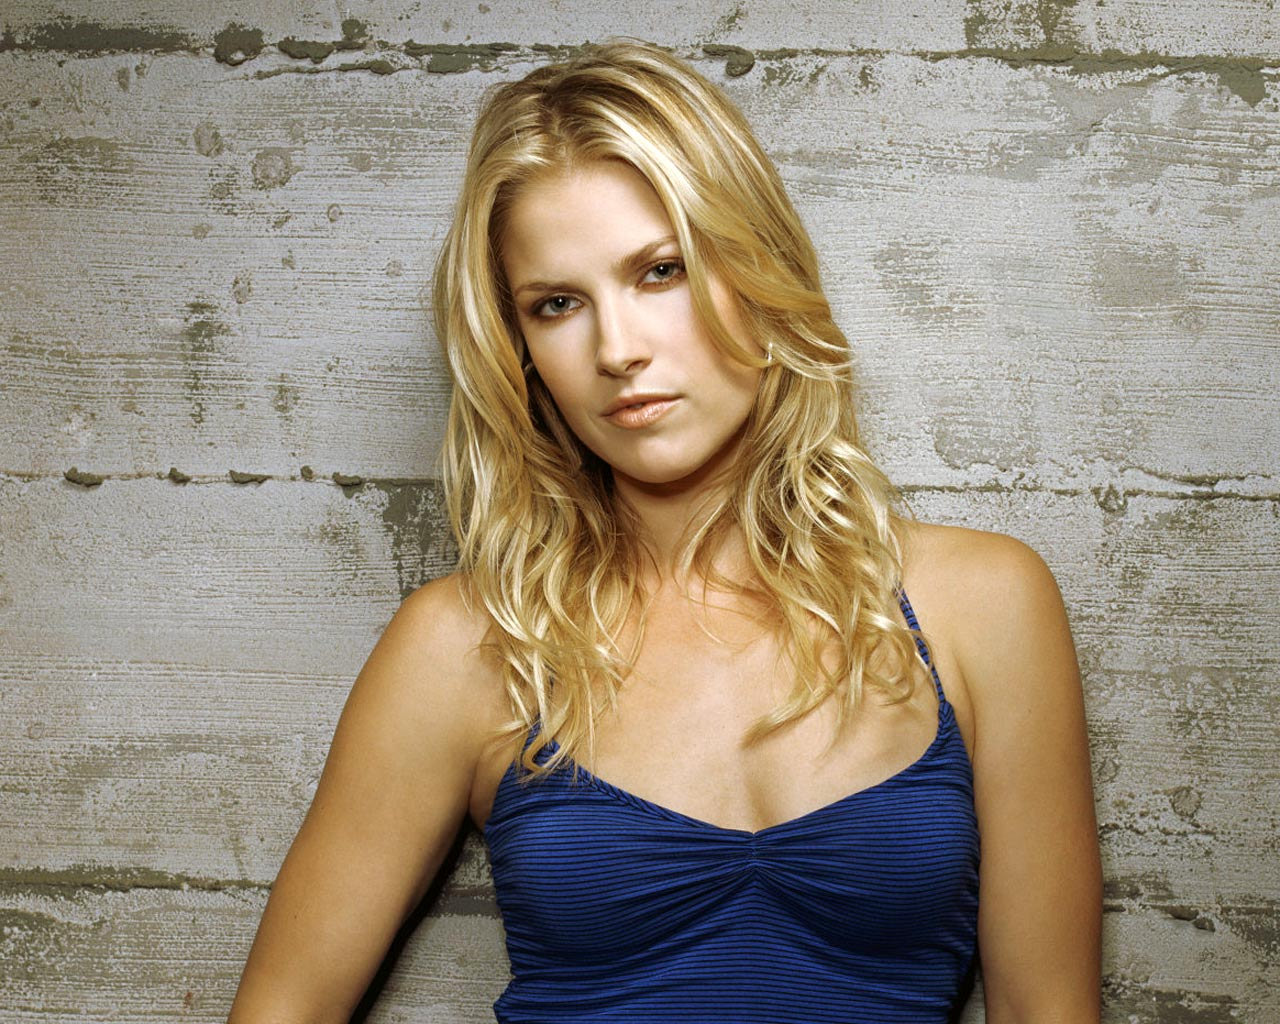 ali-larter-best-hd-desktop-wallpaper-free-celebrity-